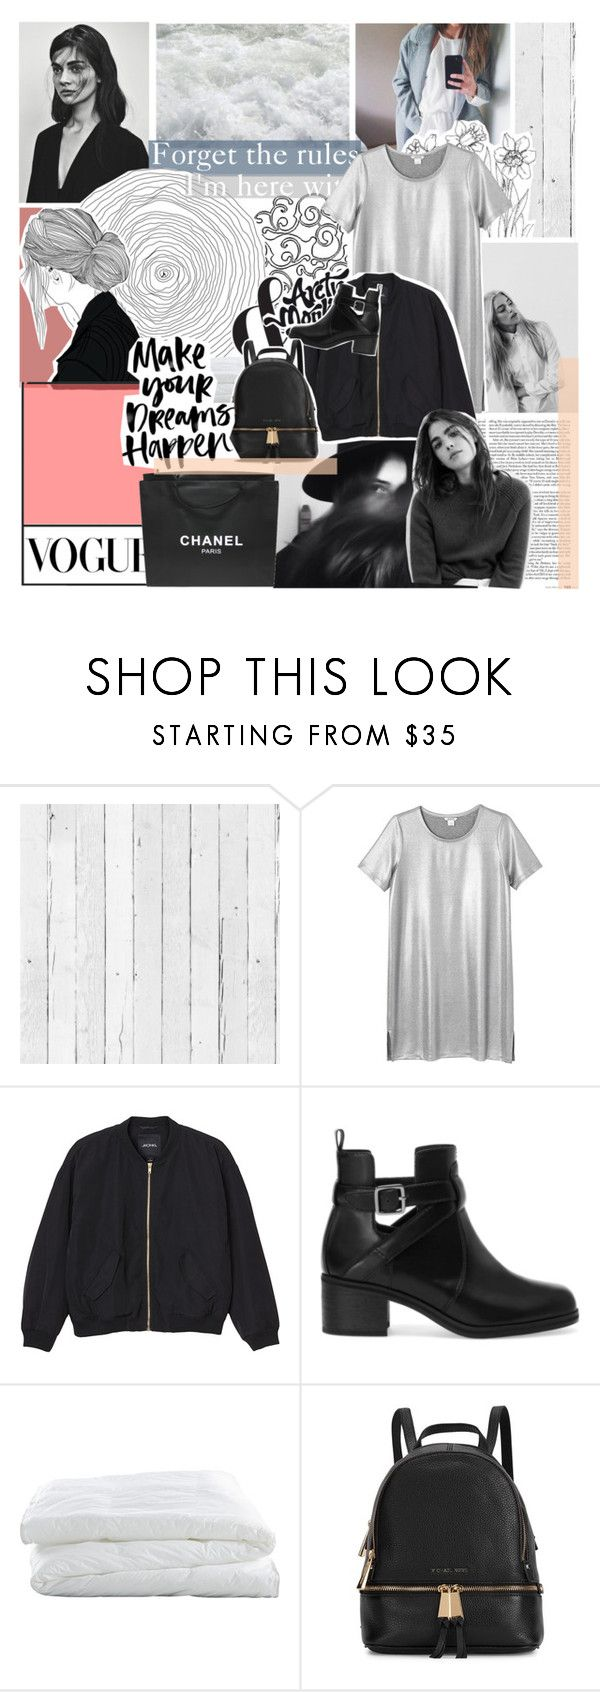 """""""Life is always rocky when your a gem"""" by moon-sun-of-usa ❤ liked on Polyvore featuring NLXL, Monki, Pull&Bear, Crate and Barrel, PAM, Michael Kors and Chanel"""